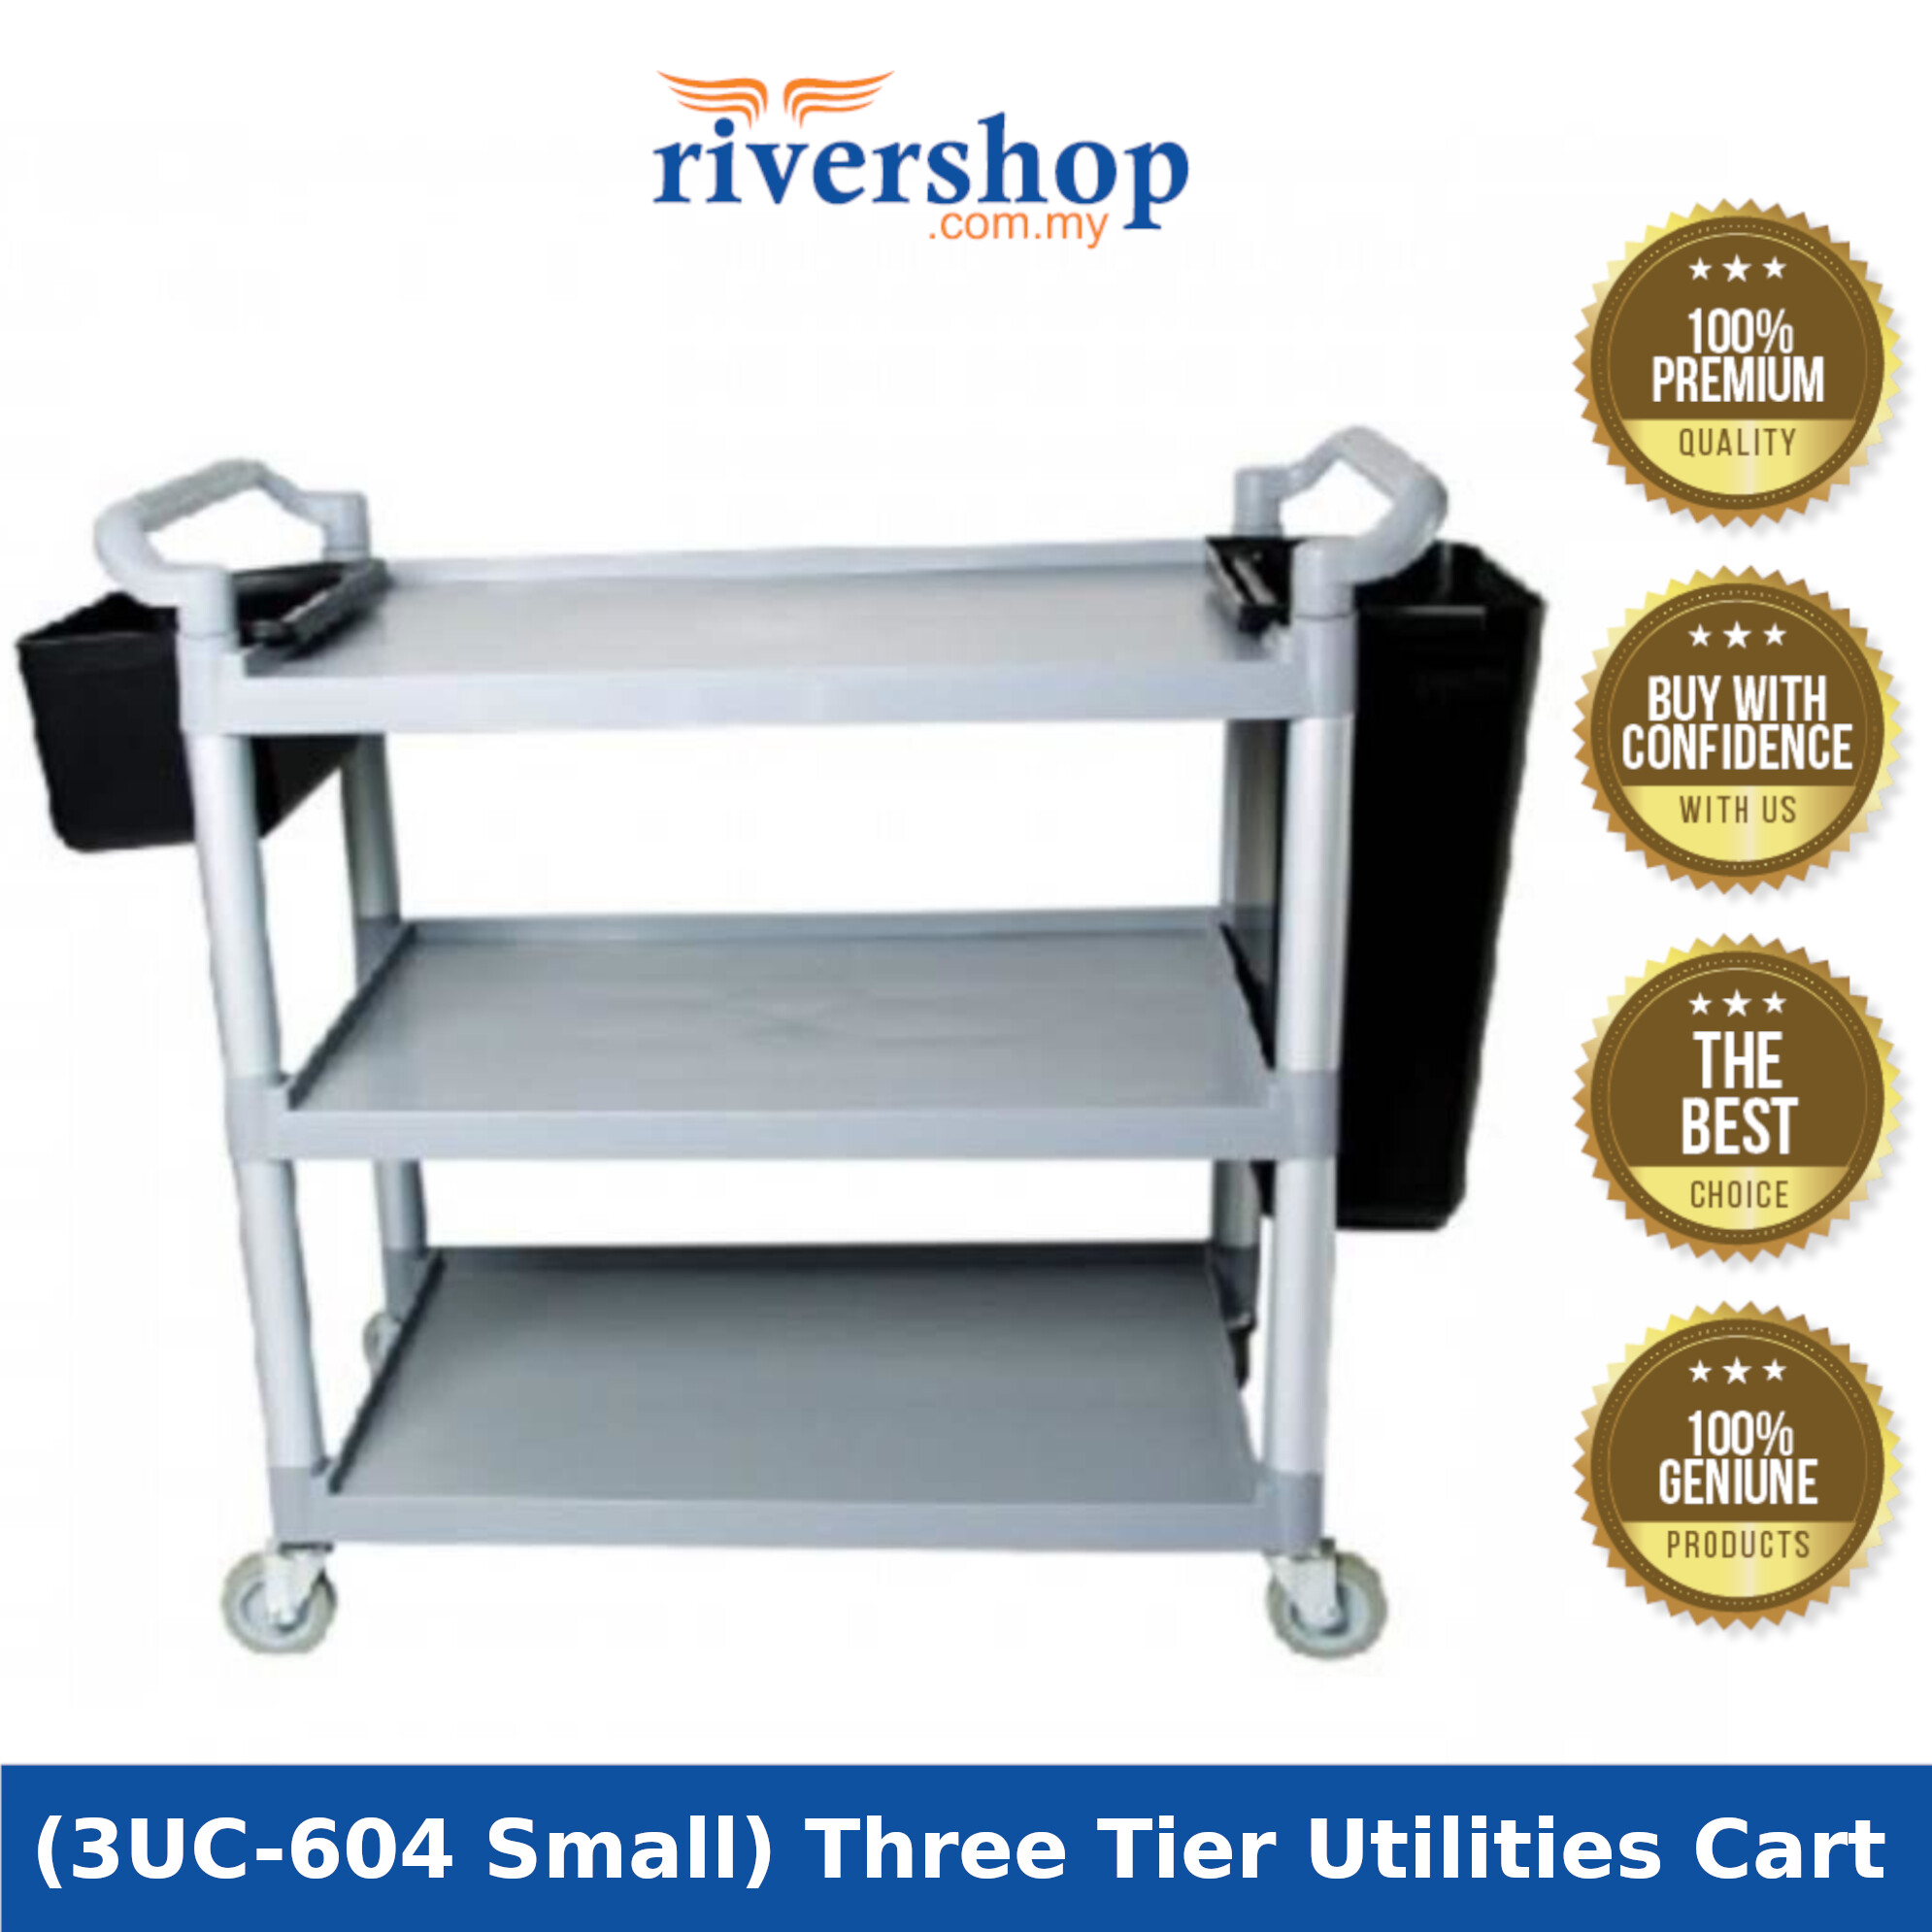 [High Quality] Plastic 3 Tiers Utilities Cart Wheeling Trolley with Bucket (3UC-604 Small) for Home Hotel Restaurant Commercial of Storage Organization